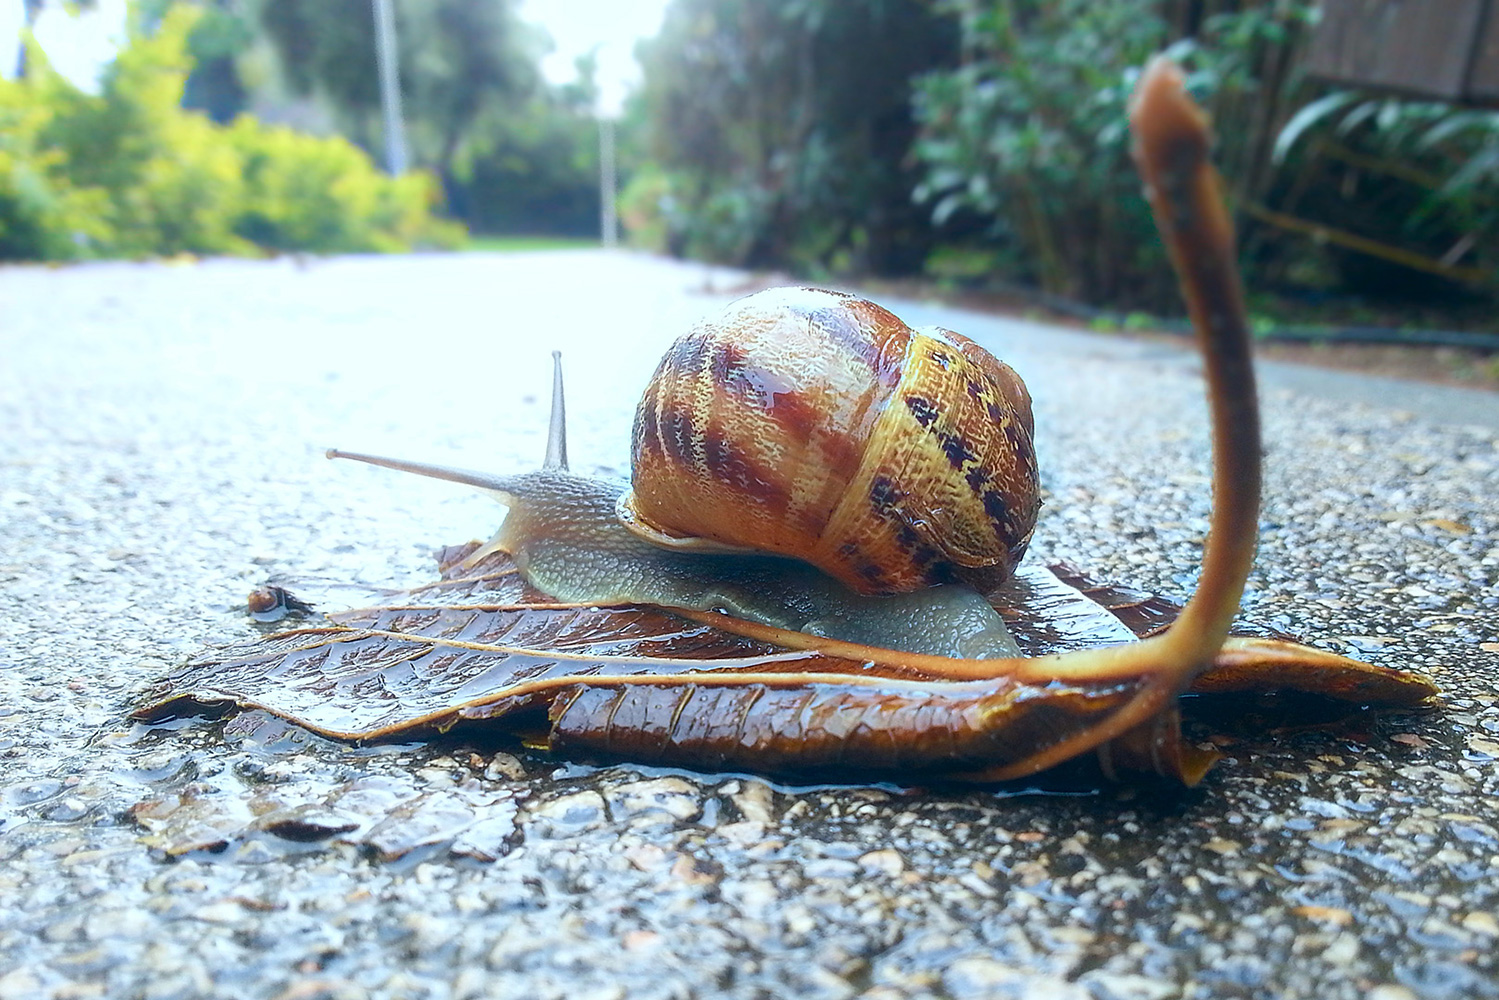 A Snail on a Rainy Day